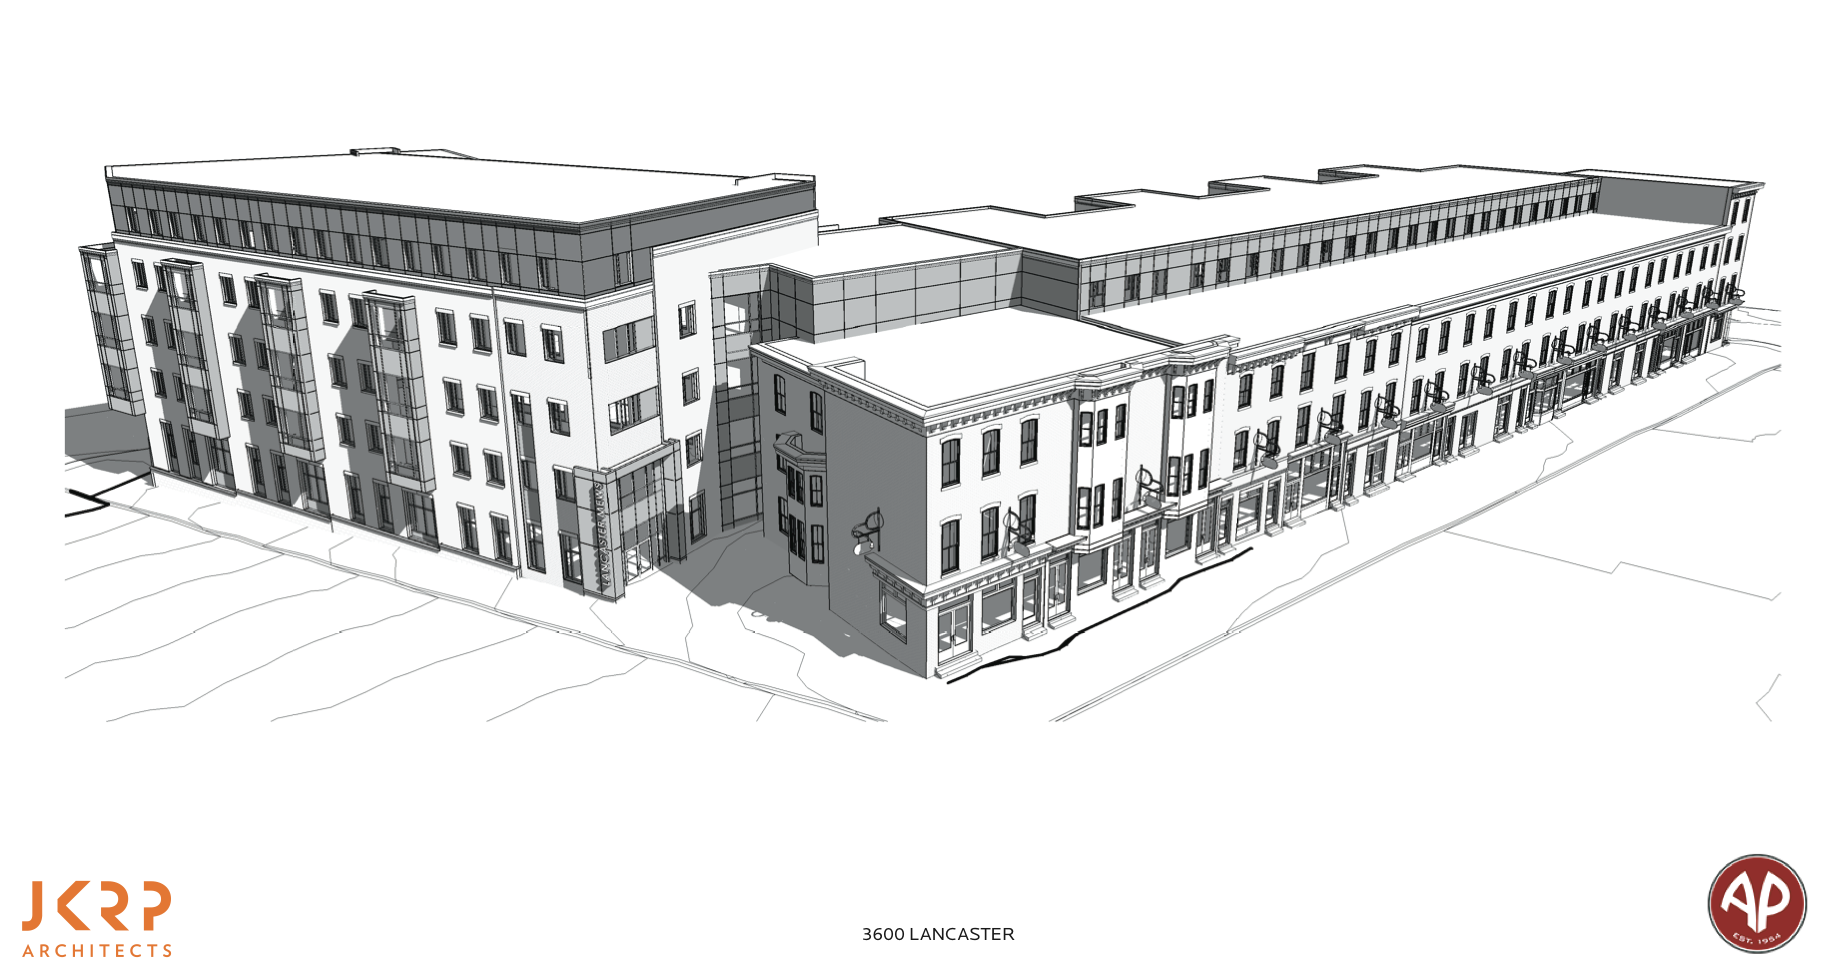 Conceptual plan for Lancaster Mews presented at Architectural Committee, May 2016